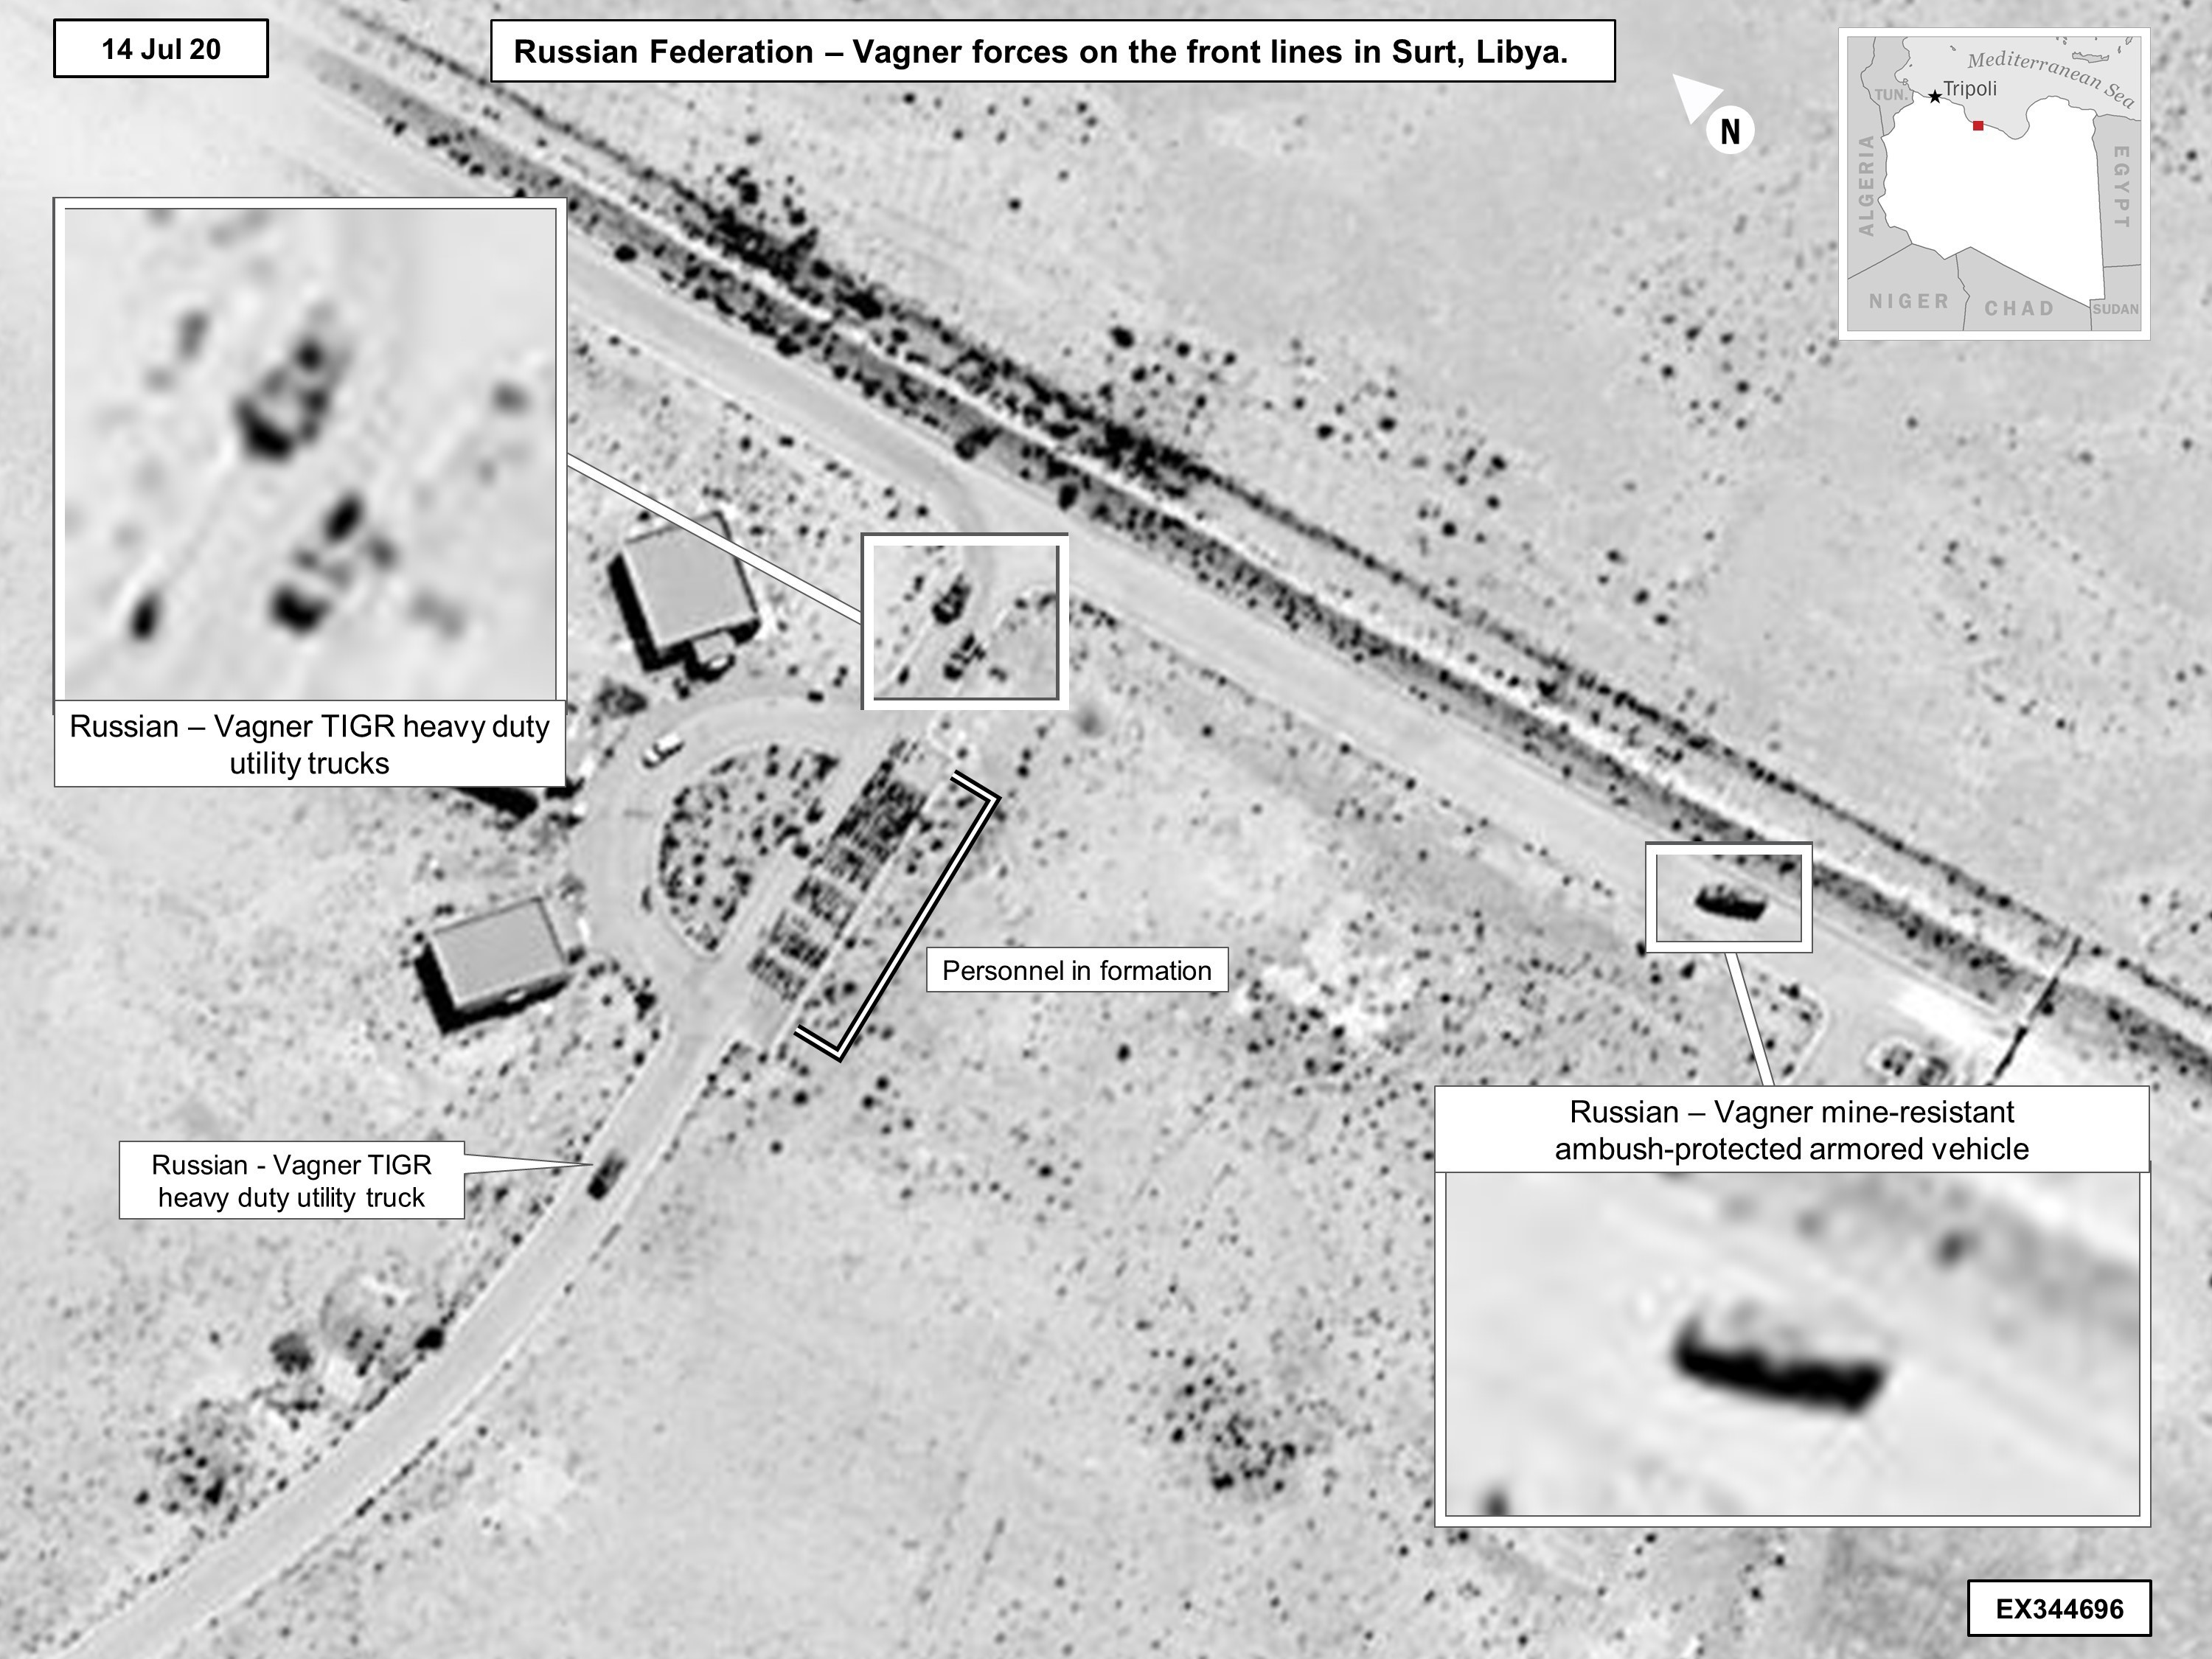 US satellite imagery released by Africom on 24 July reportedly shows Russian military equipment deployed on the frontlines of Sirte, Libya (Africom)